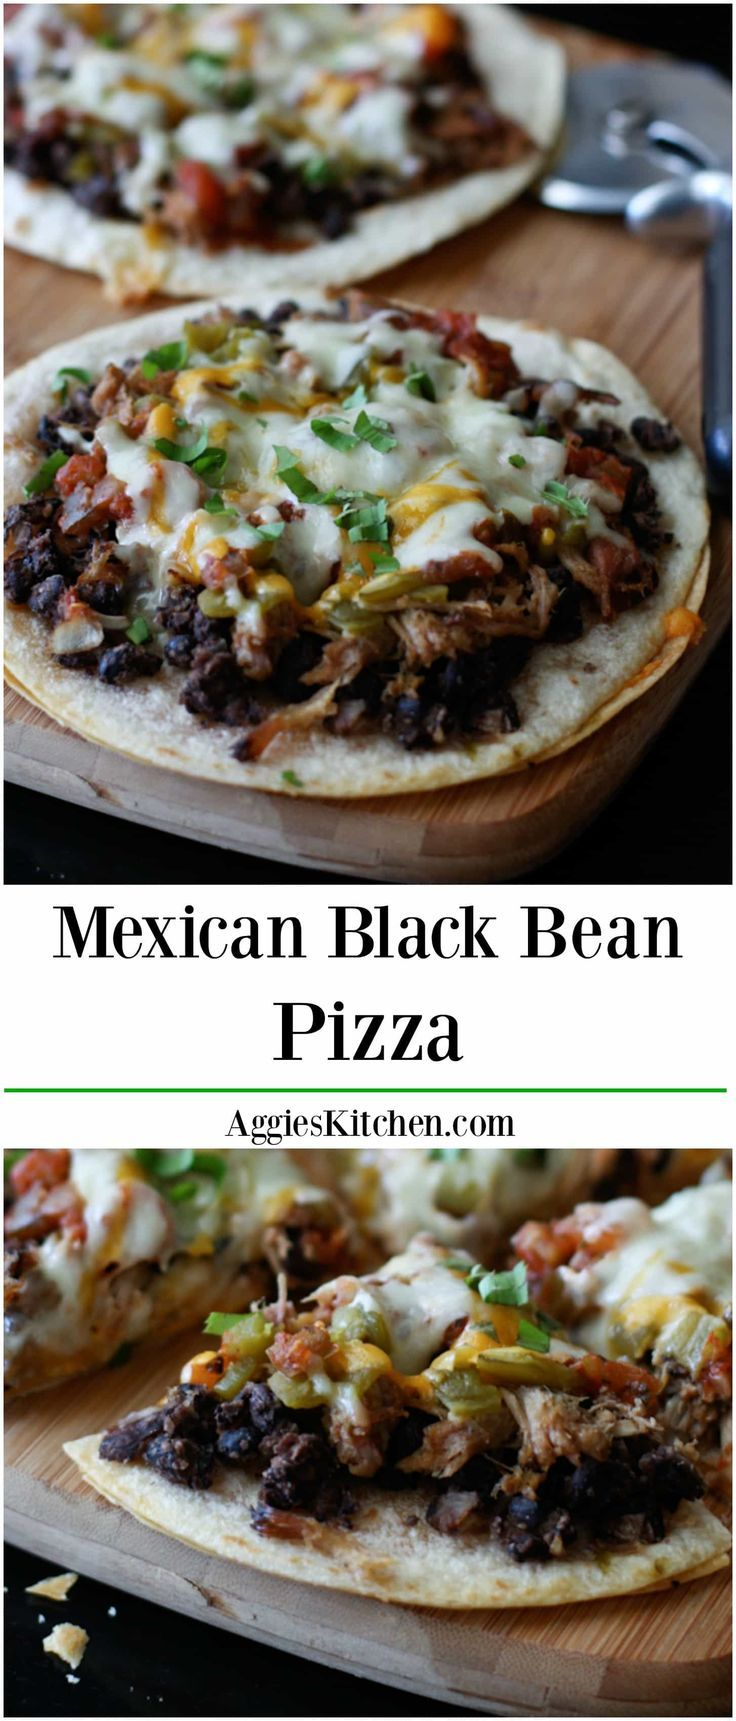 Loaded with pulled pork, beans and cheese this Mexican Black Bean Pizza will satisfy any appetite or craving! Recipe via aggieskitchen.com